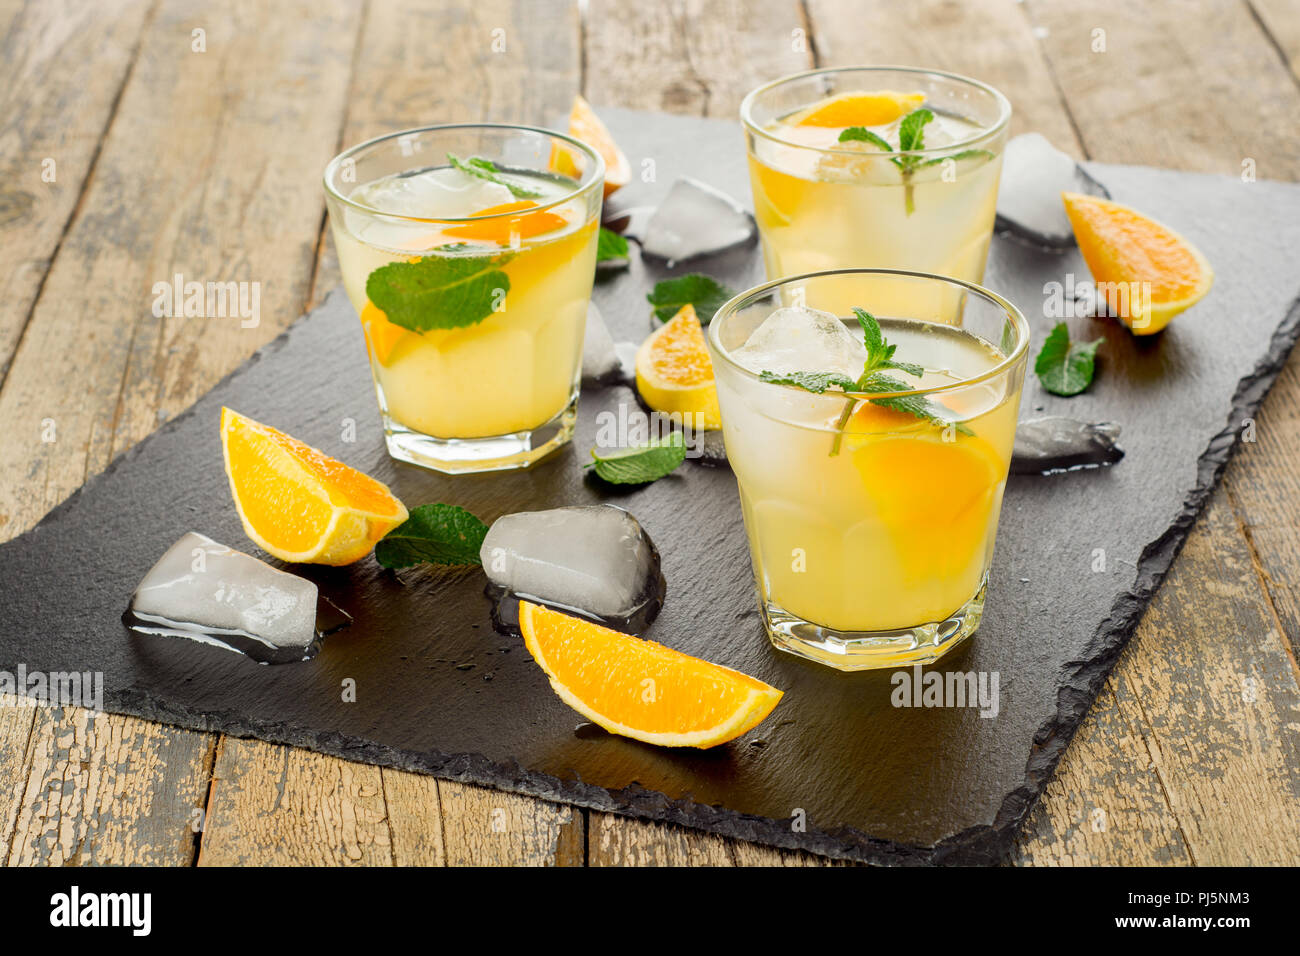 Summer drink. Citrus lemonade with mint and ice on white wooden background. - Stock Image